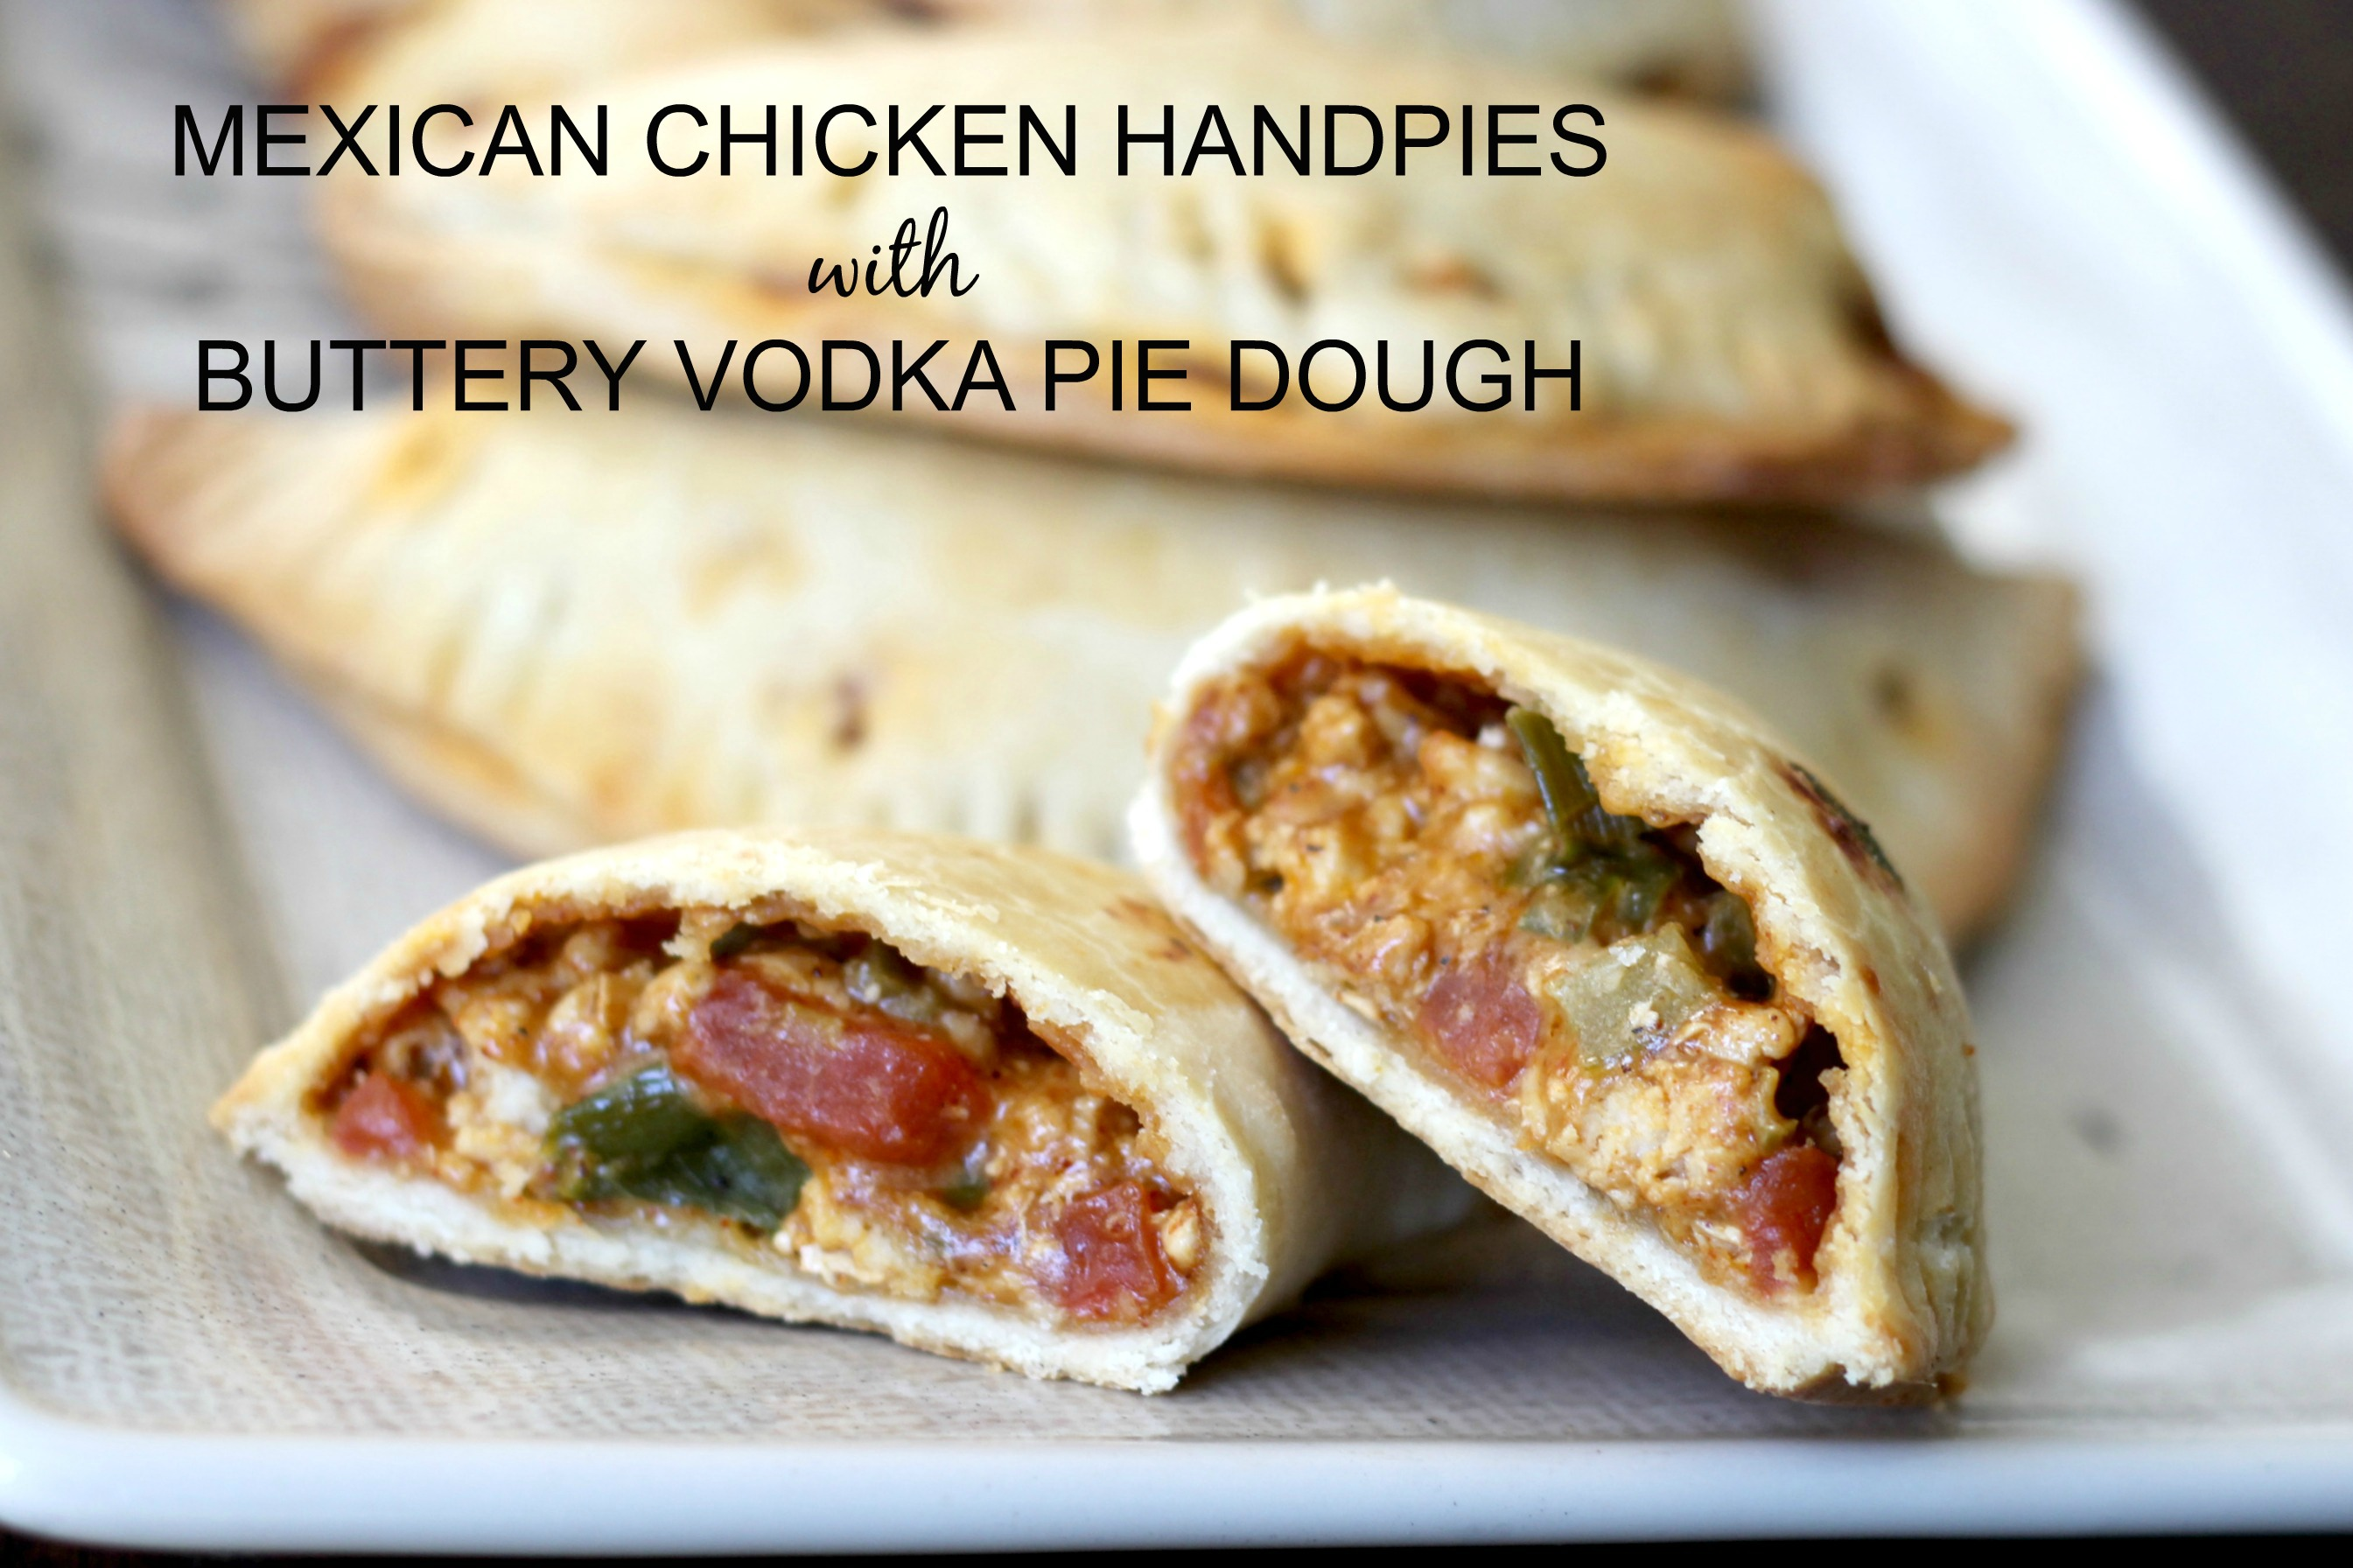 mexican-chicken-handpies-with-buttery-vodka-dough